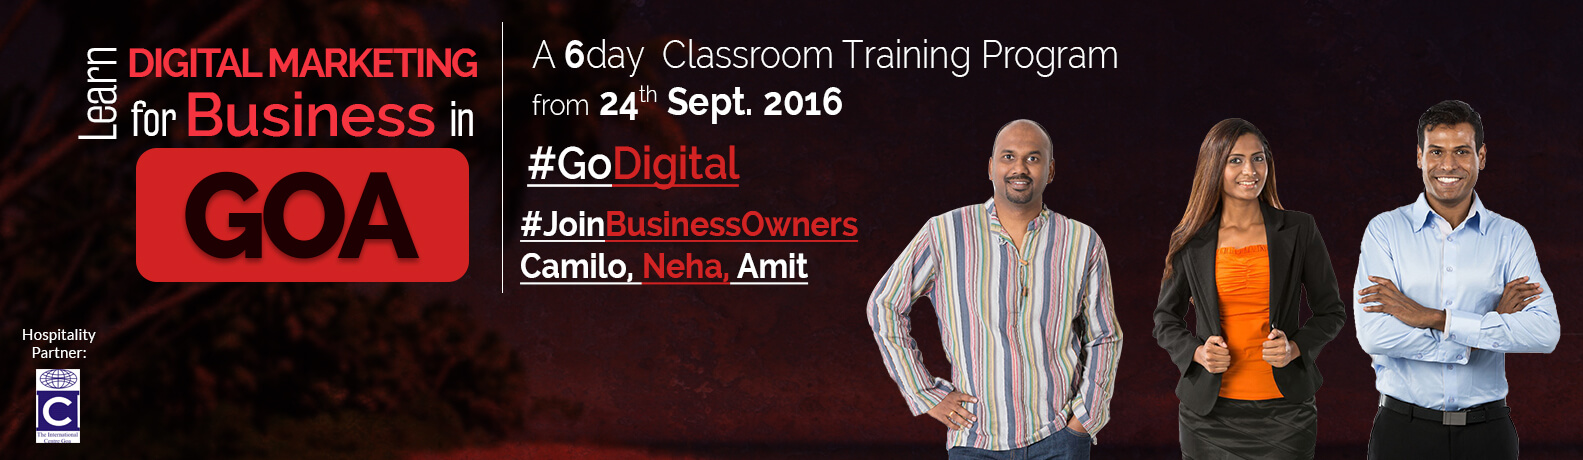 Digital Marketing Course for SMB